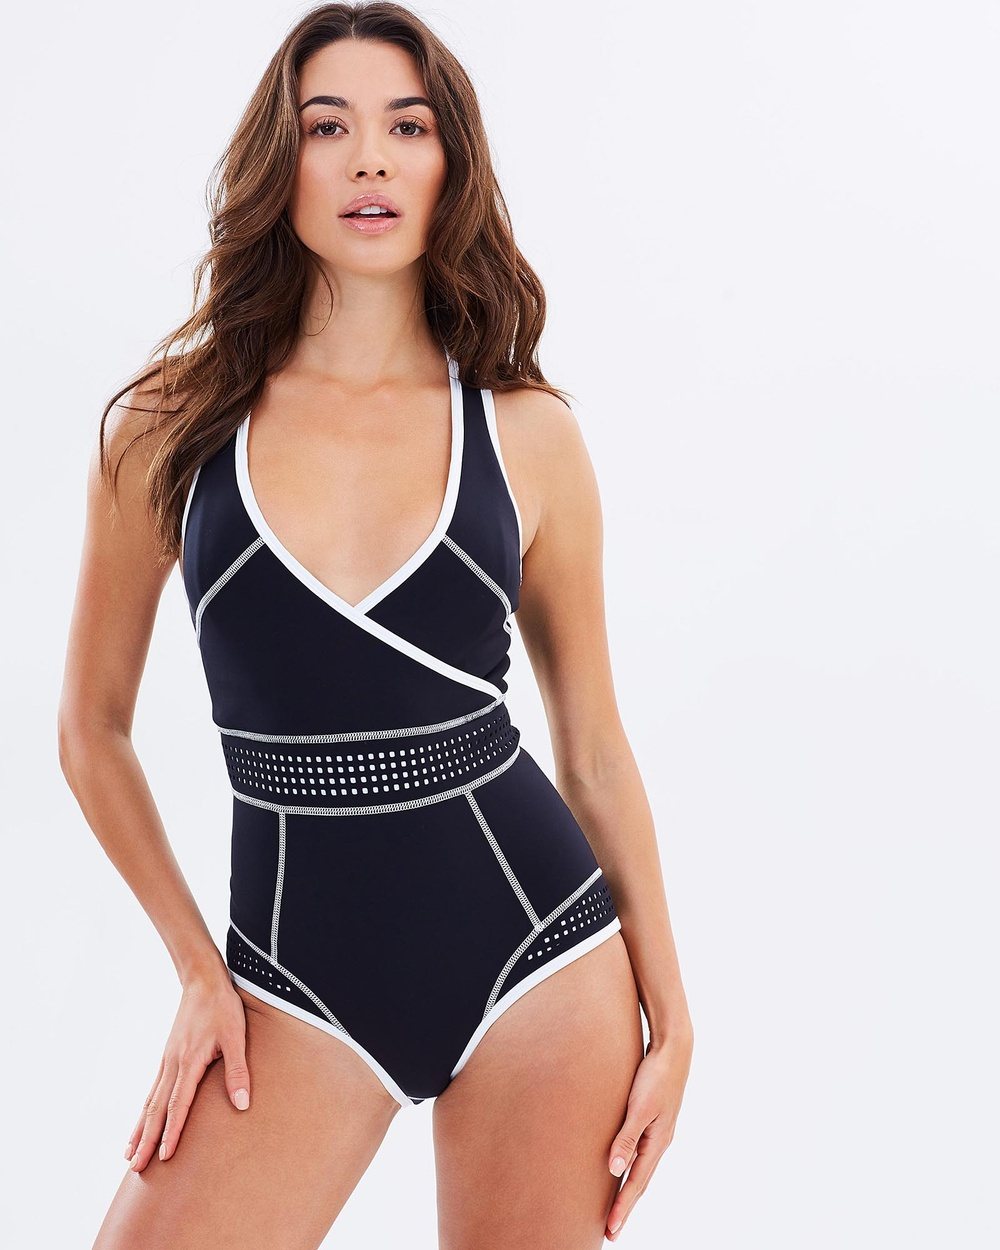 Duskii Waimea Bay Crossover One Piece One-Piece / Swimsuit Black & White Waimea Bay Crossover One-Piece